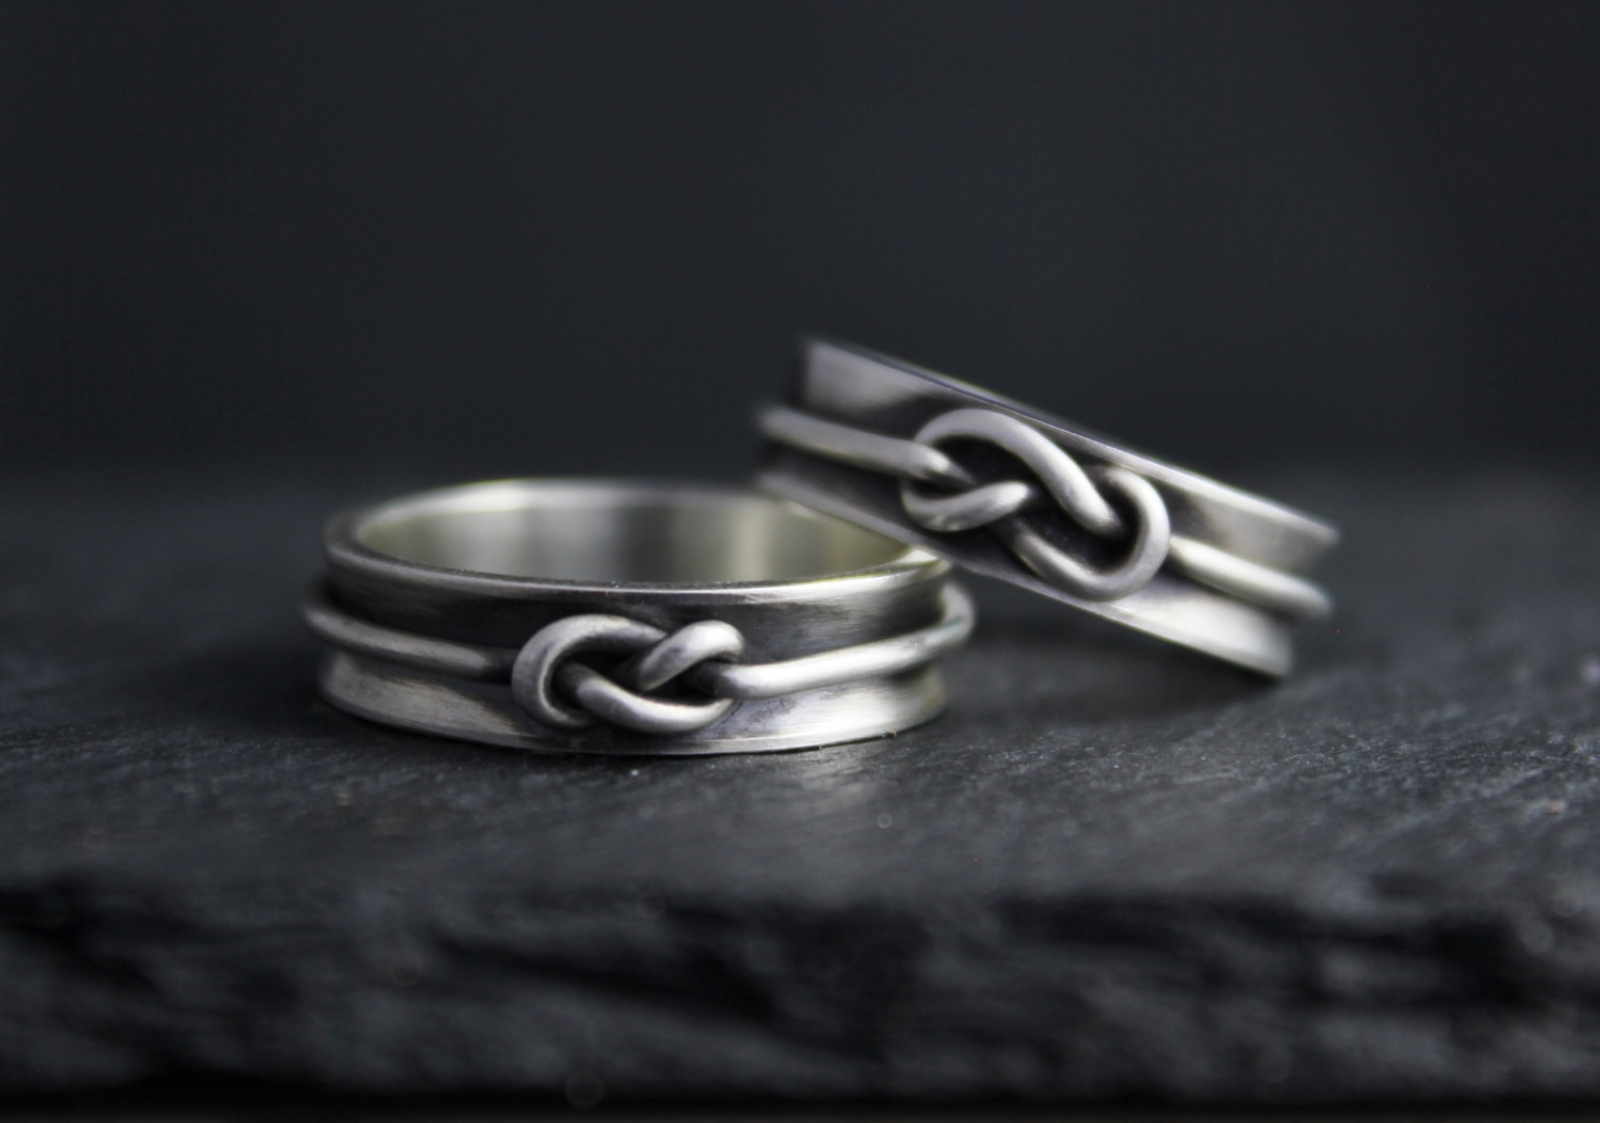 Infinity Knot Ring Sterling Silver Love Knot Ring 6mm Wide Ring Matching Wedding Bands Eco Friendly Ring Ready To Ship Size 9 Theresa Pytell Jewelry Design